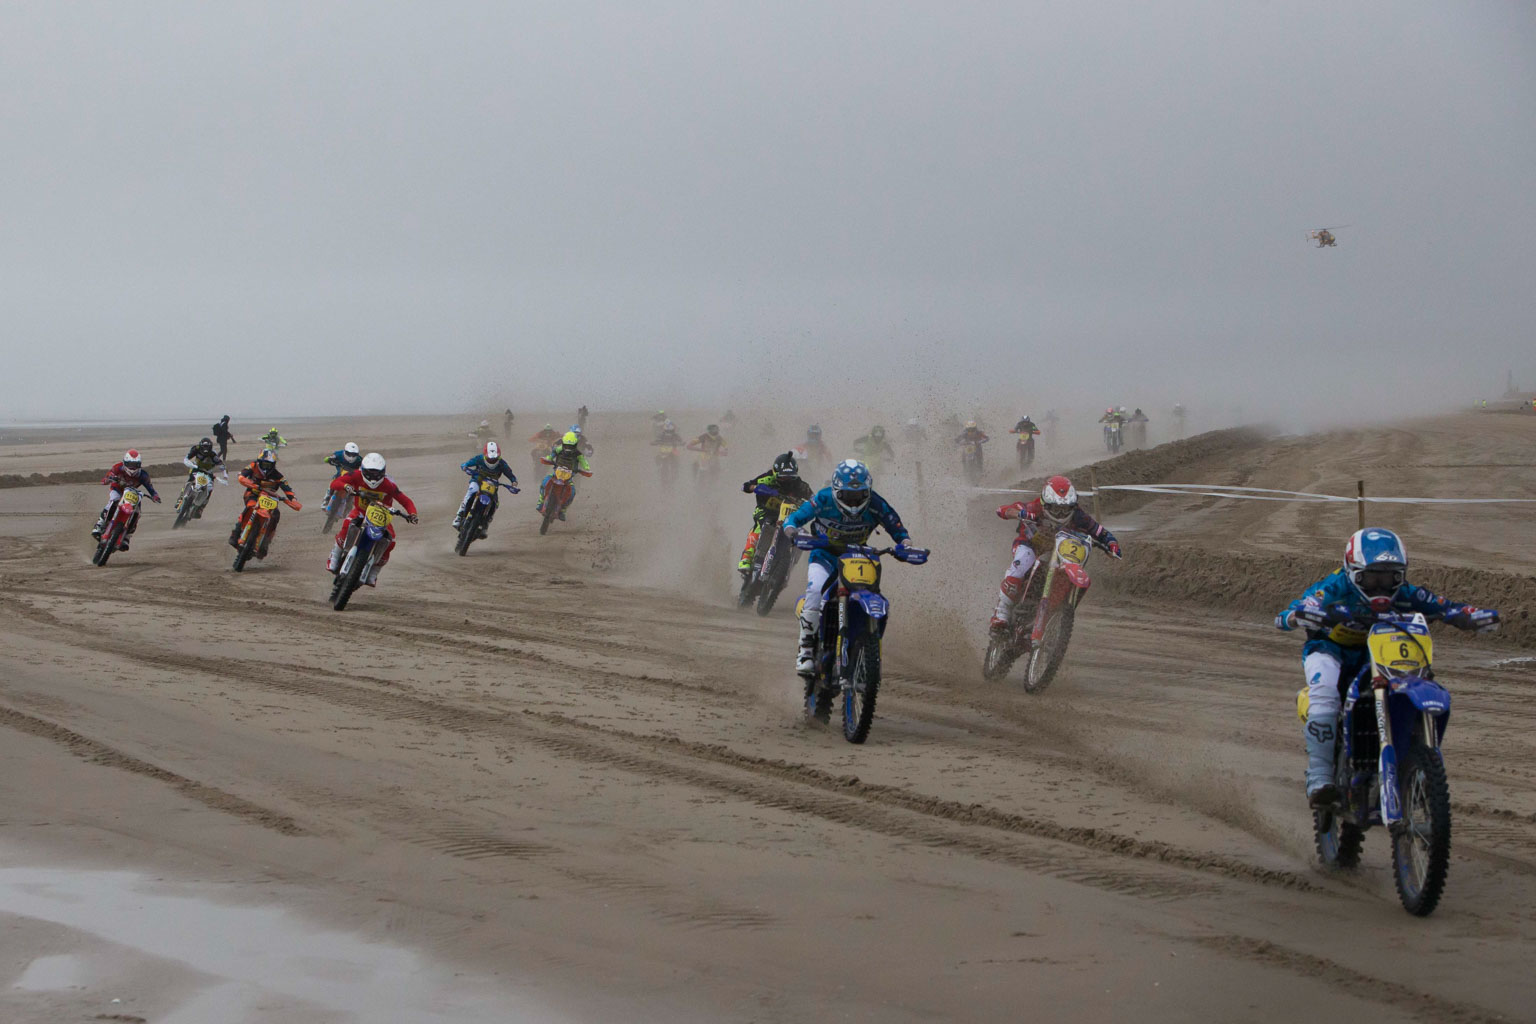 The first turn with Brossier from Martins, Degousee, Potisek and Watson